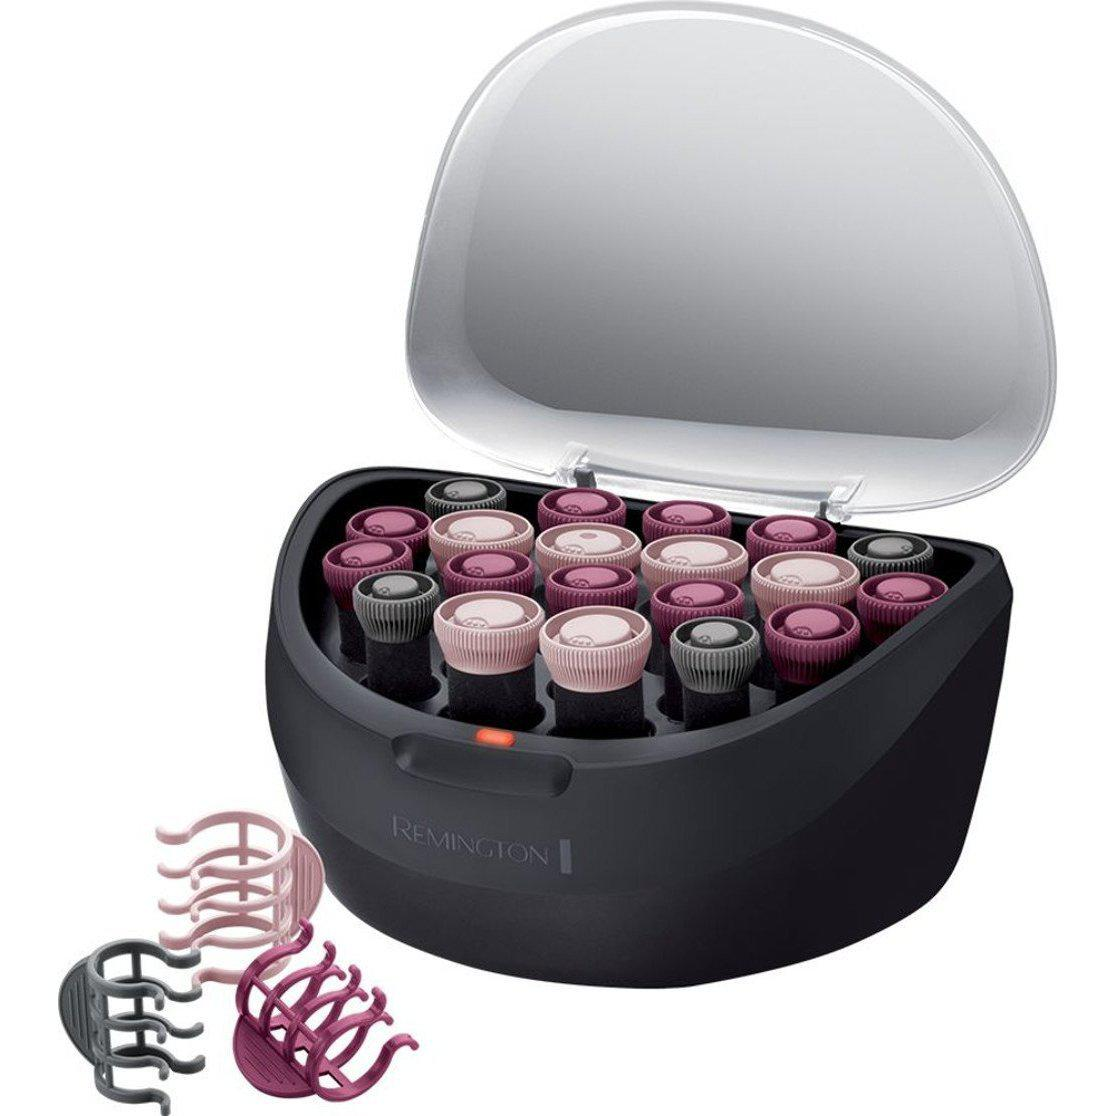 Remington H5600 Hair Rollers - Remington - Pazarska